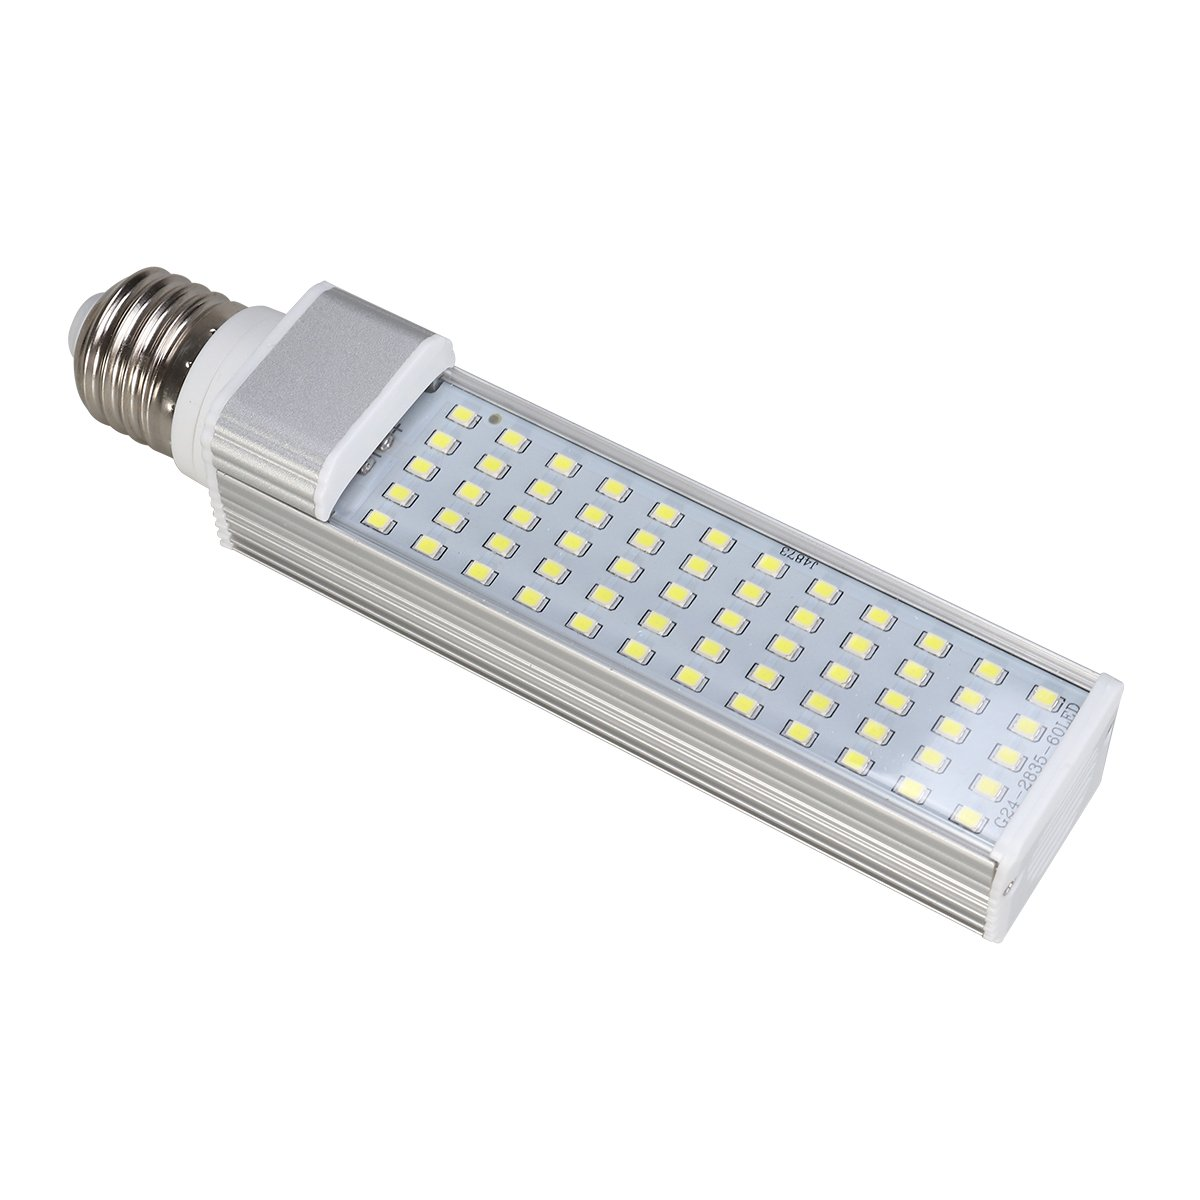 UEETEK 11W E27 LED Energy Saving Lamp to Fit All Fish Pod and Fish Box Aquariums (White)